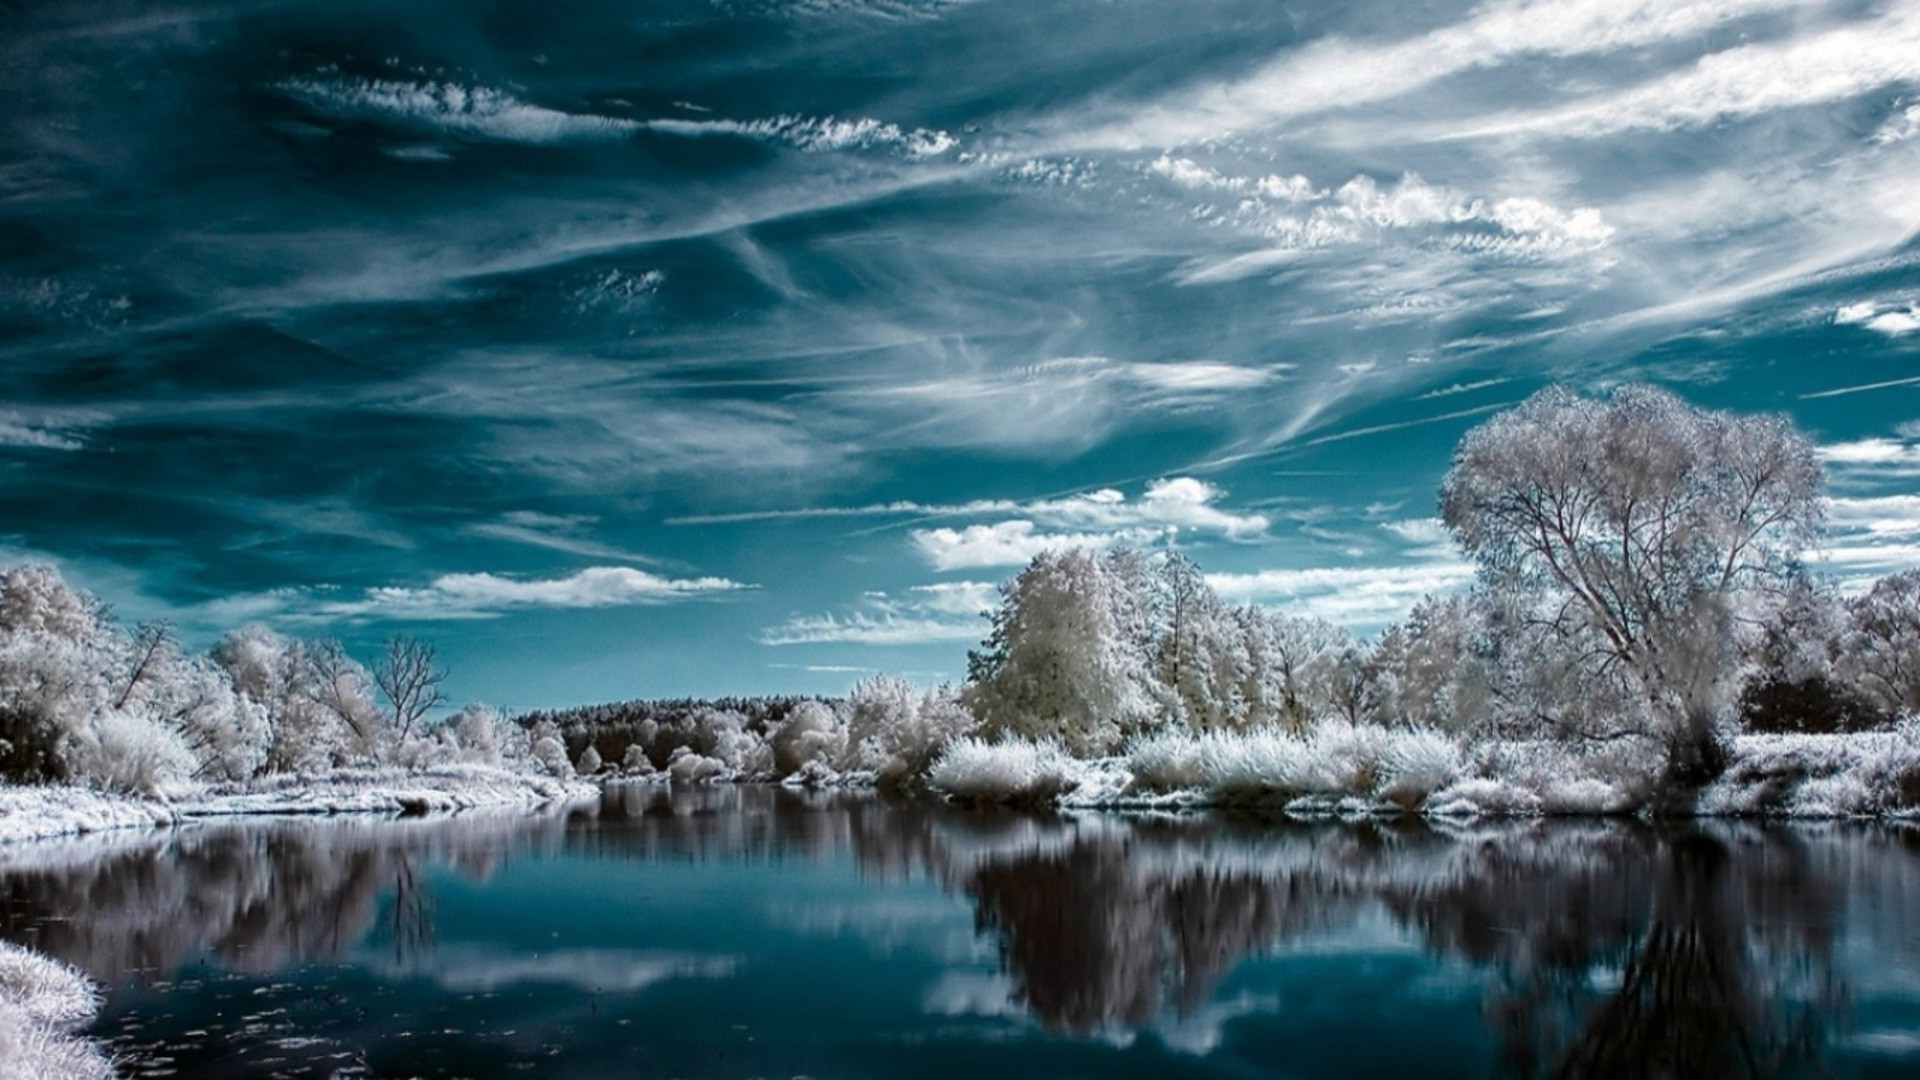 winter water sky nature travel sea outdoors landscape ocean reflection